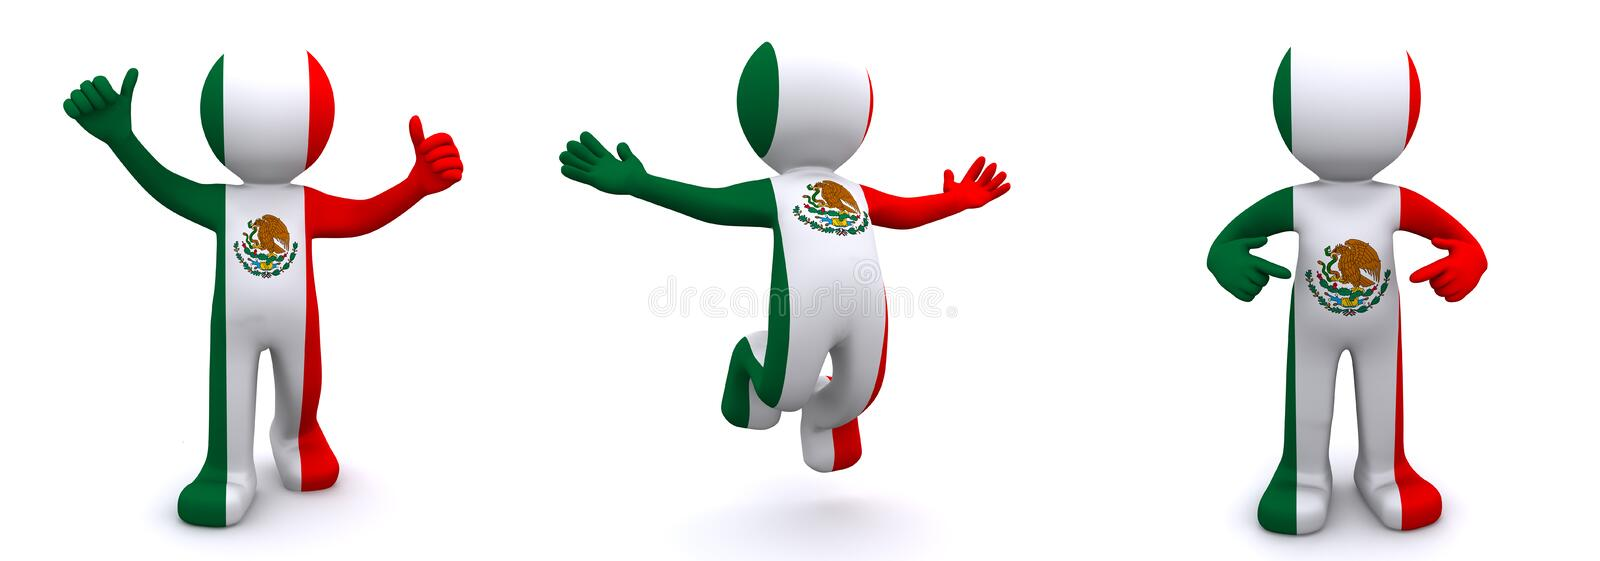 flagga texturerade mexico för tecken 3d royaltyfri illustrationer